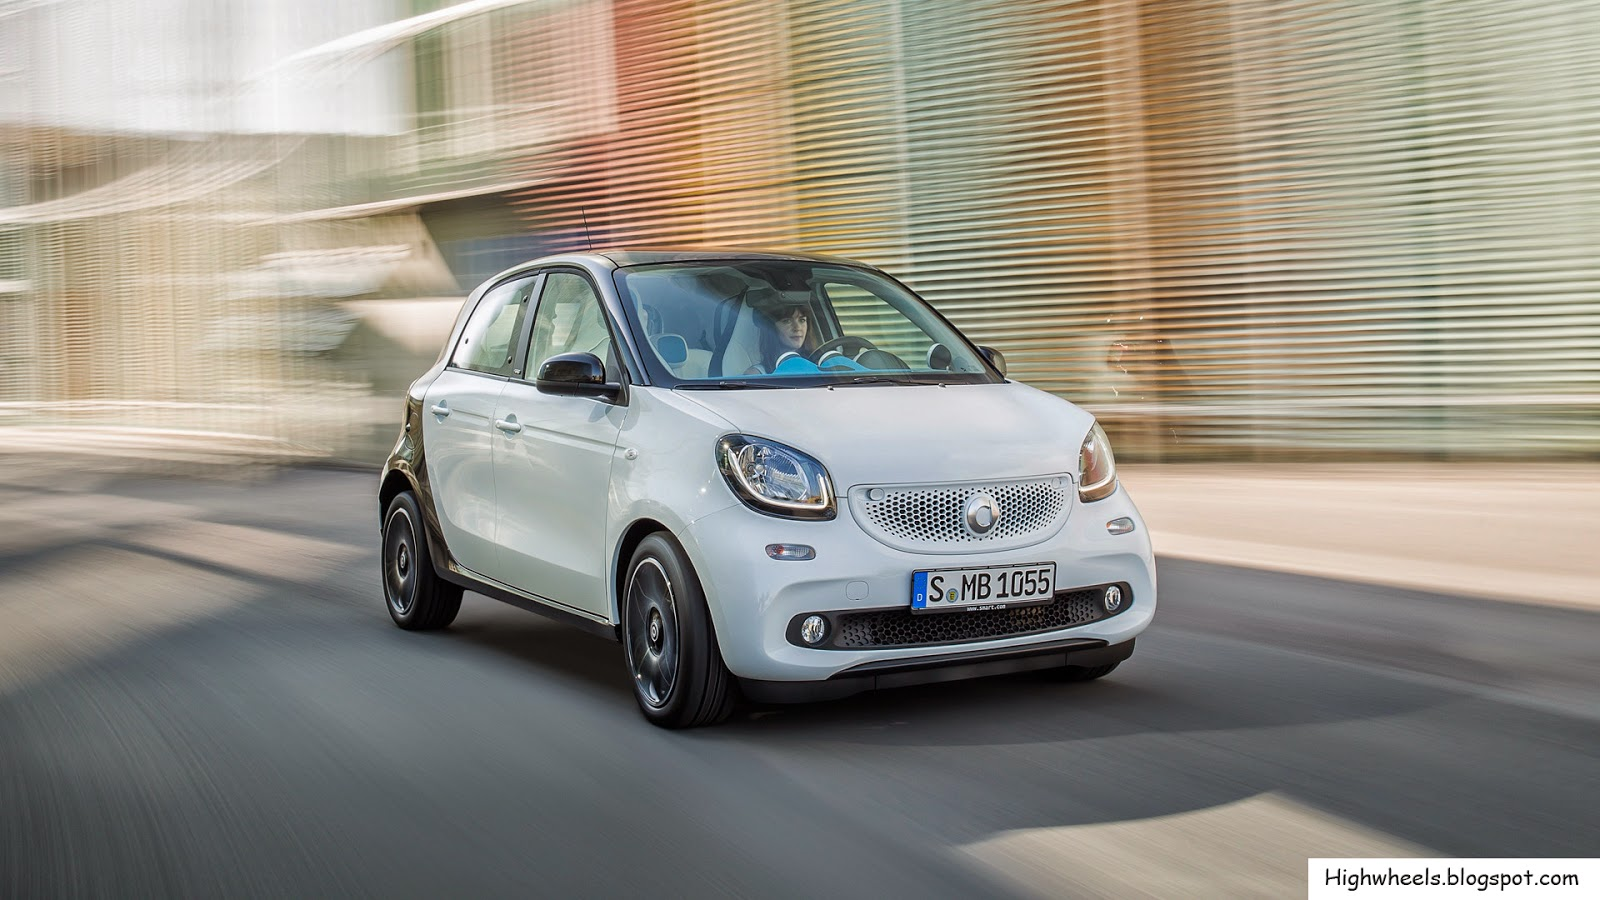 2015 Smart ForFour - High Wheels